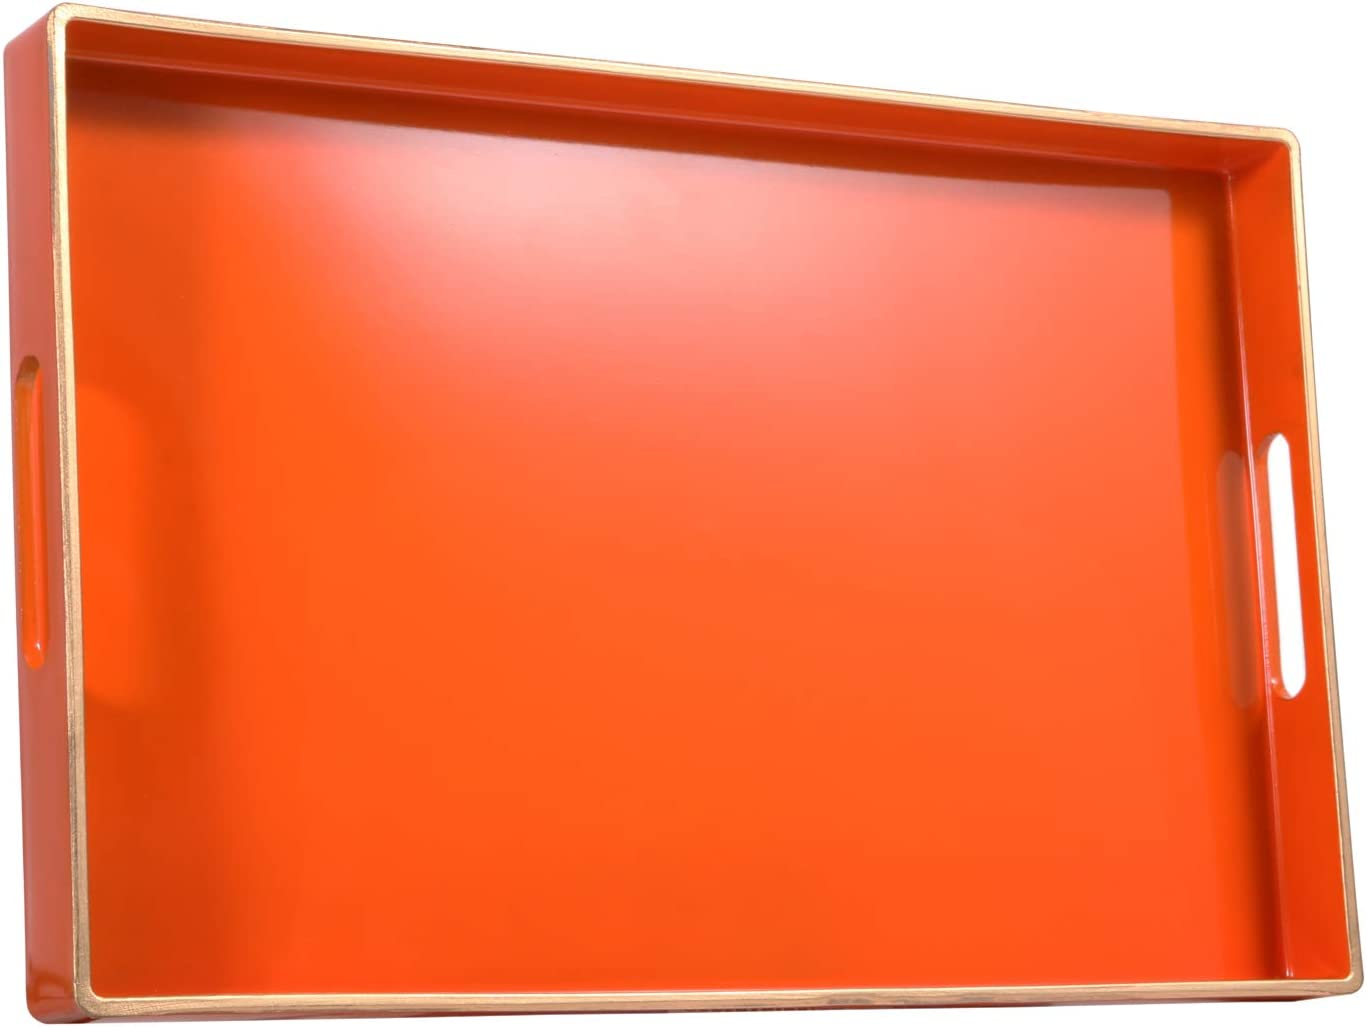 """Zosenley Decorative Tray, Rectangular Plastic Tray with Handles, Modern Vanity Tray and Serving Tray for Bathroom, Kitchen, Ottoman and Coffee table, 15.6"""" x 10.2"""", Orange"""